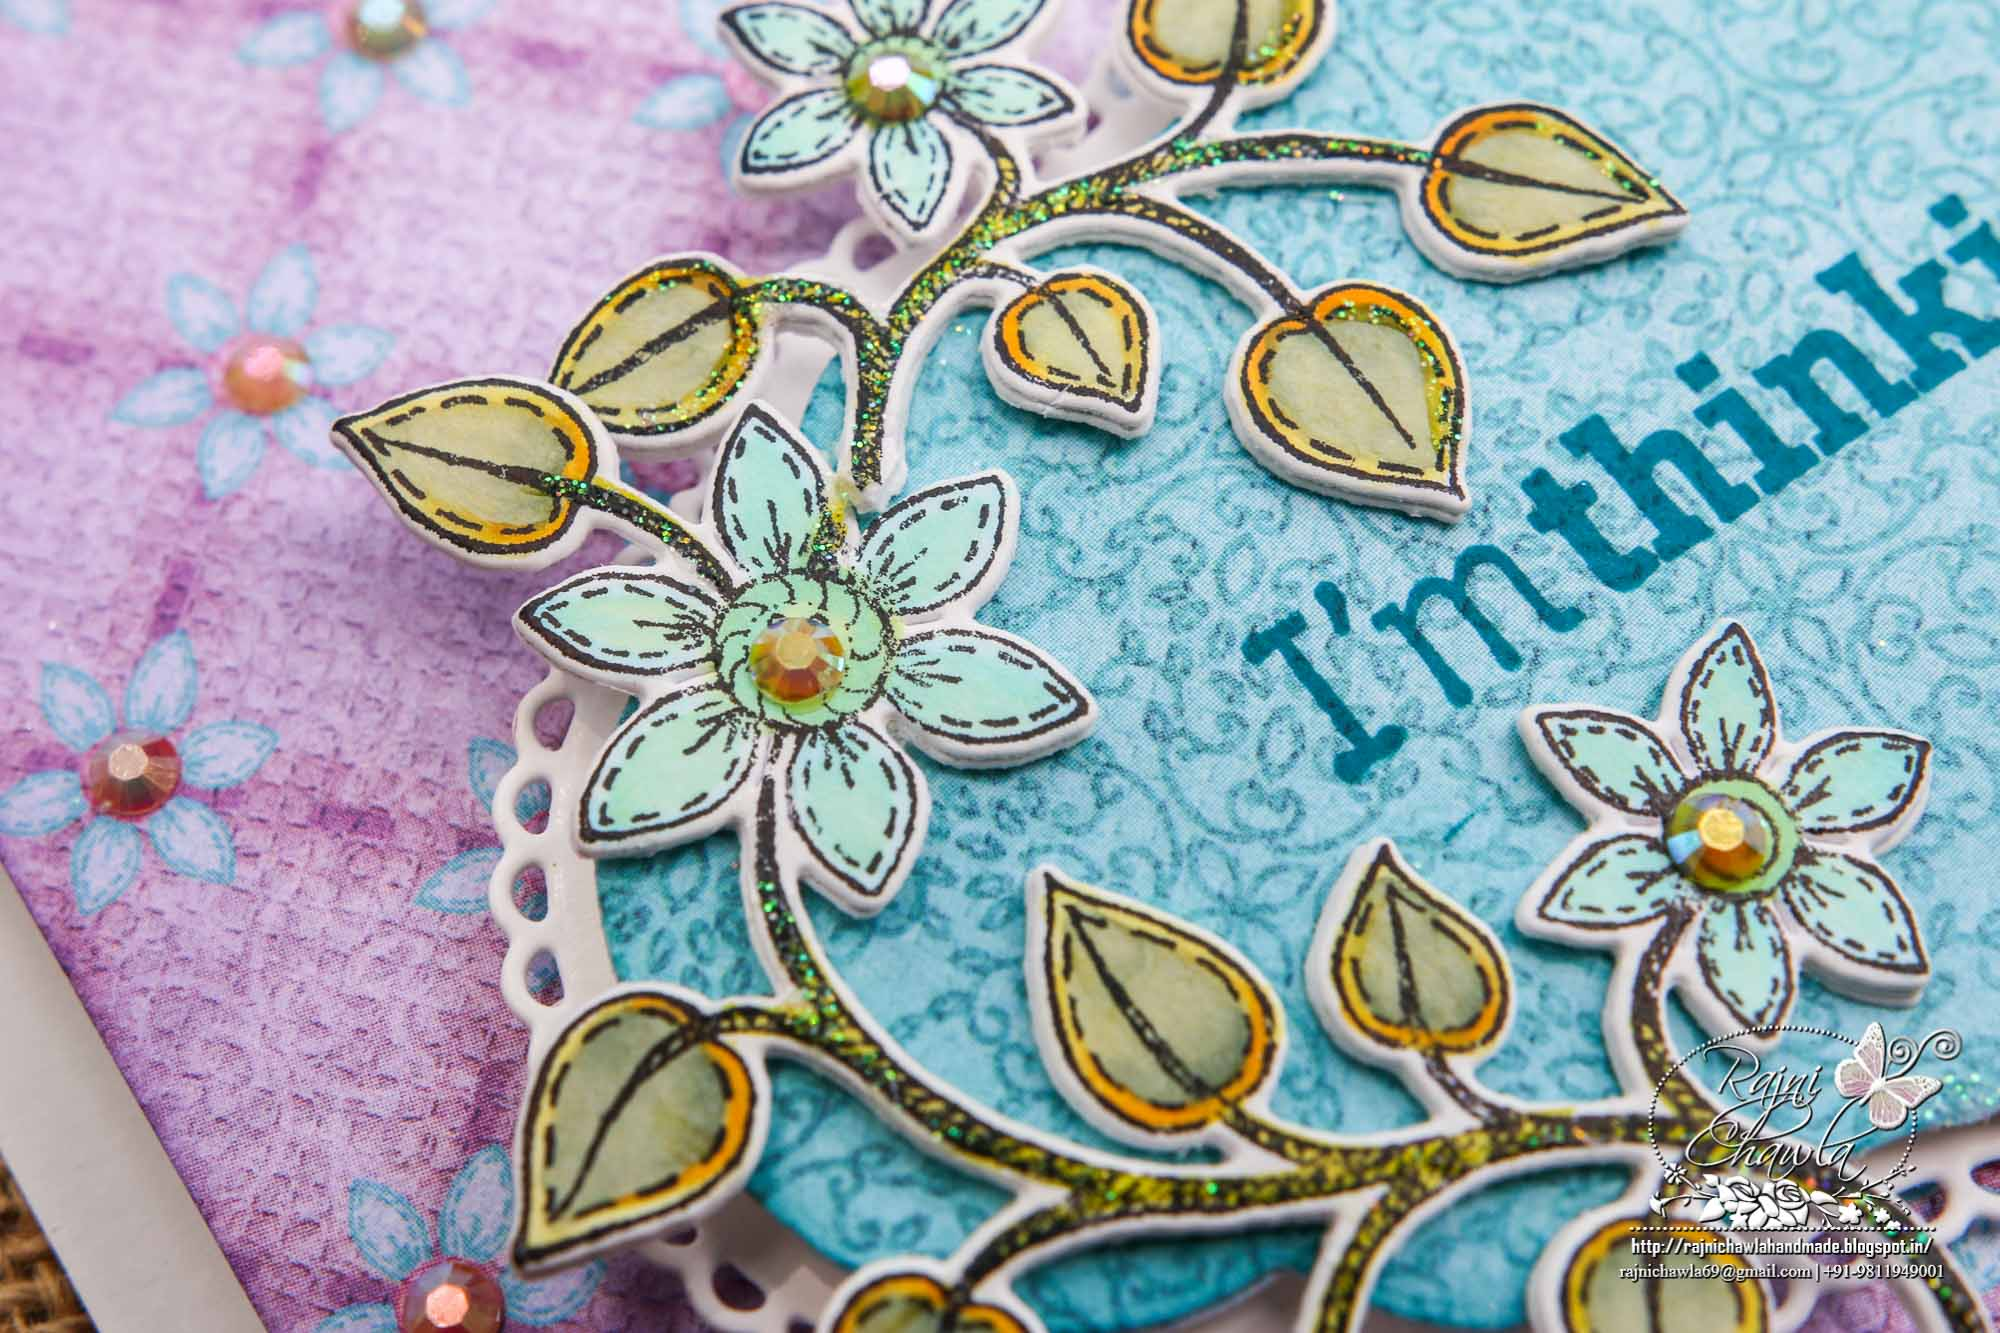 Debuting Patchwork Daisy Collection